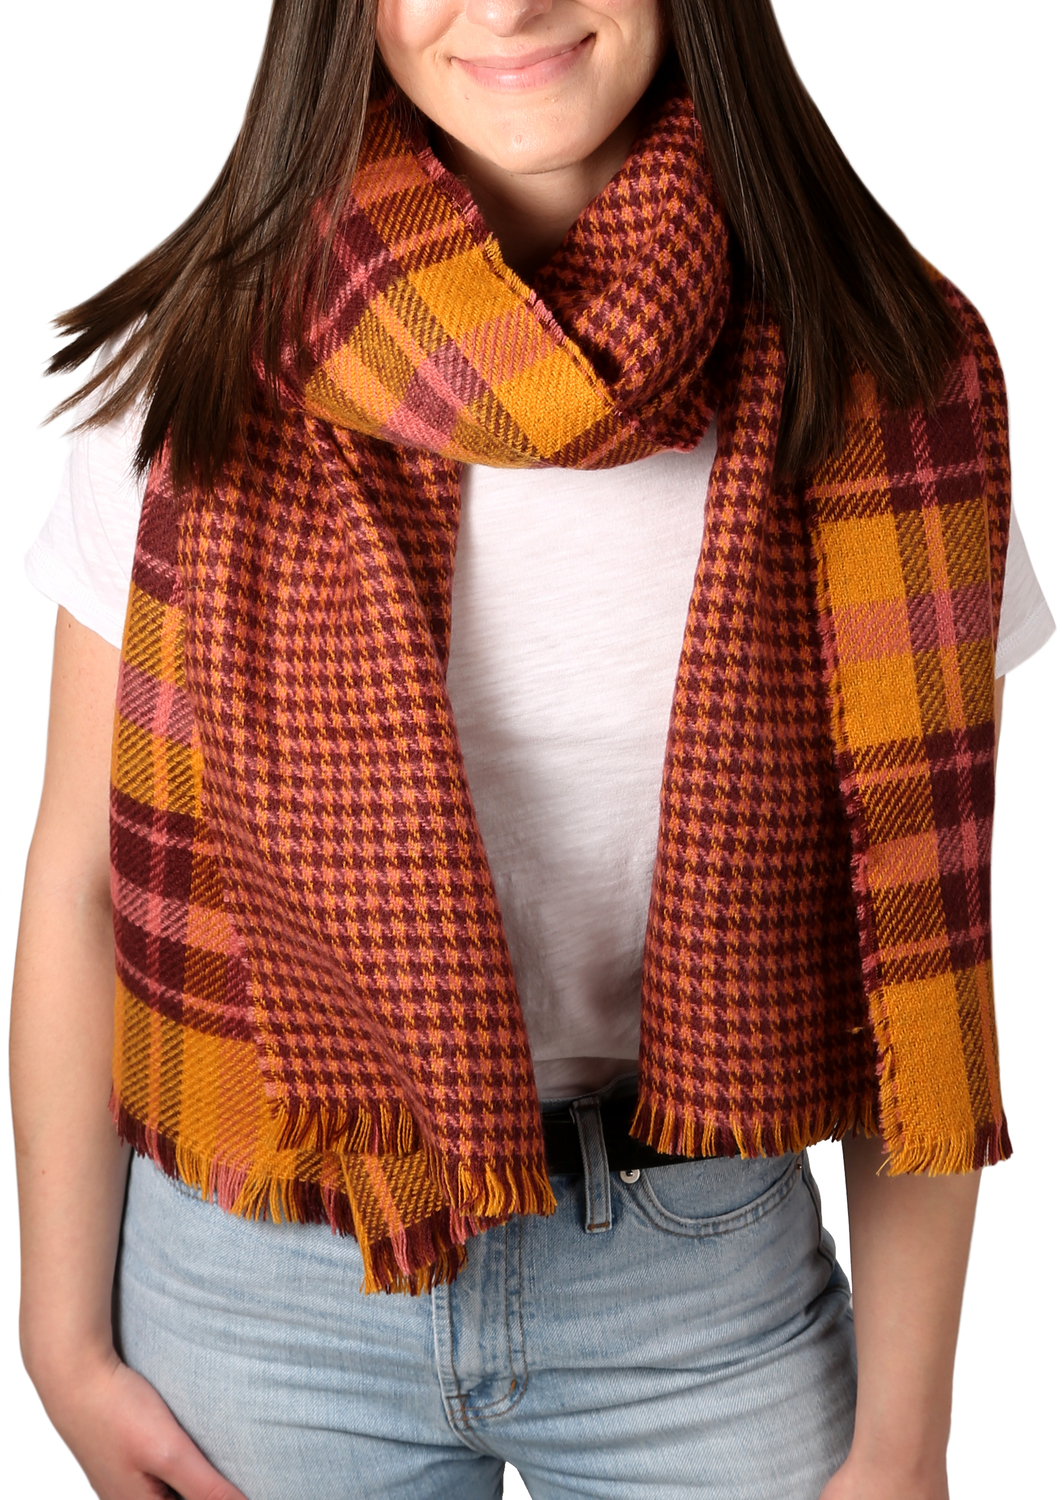 "Apricot Sunset by H2Z Scarves - Apricot Sunset - 74.5"" x 25.5"" Plaid Scarf"